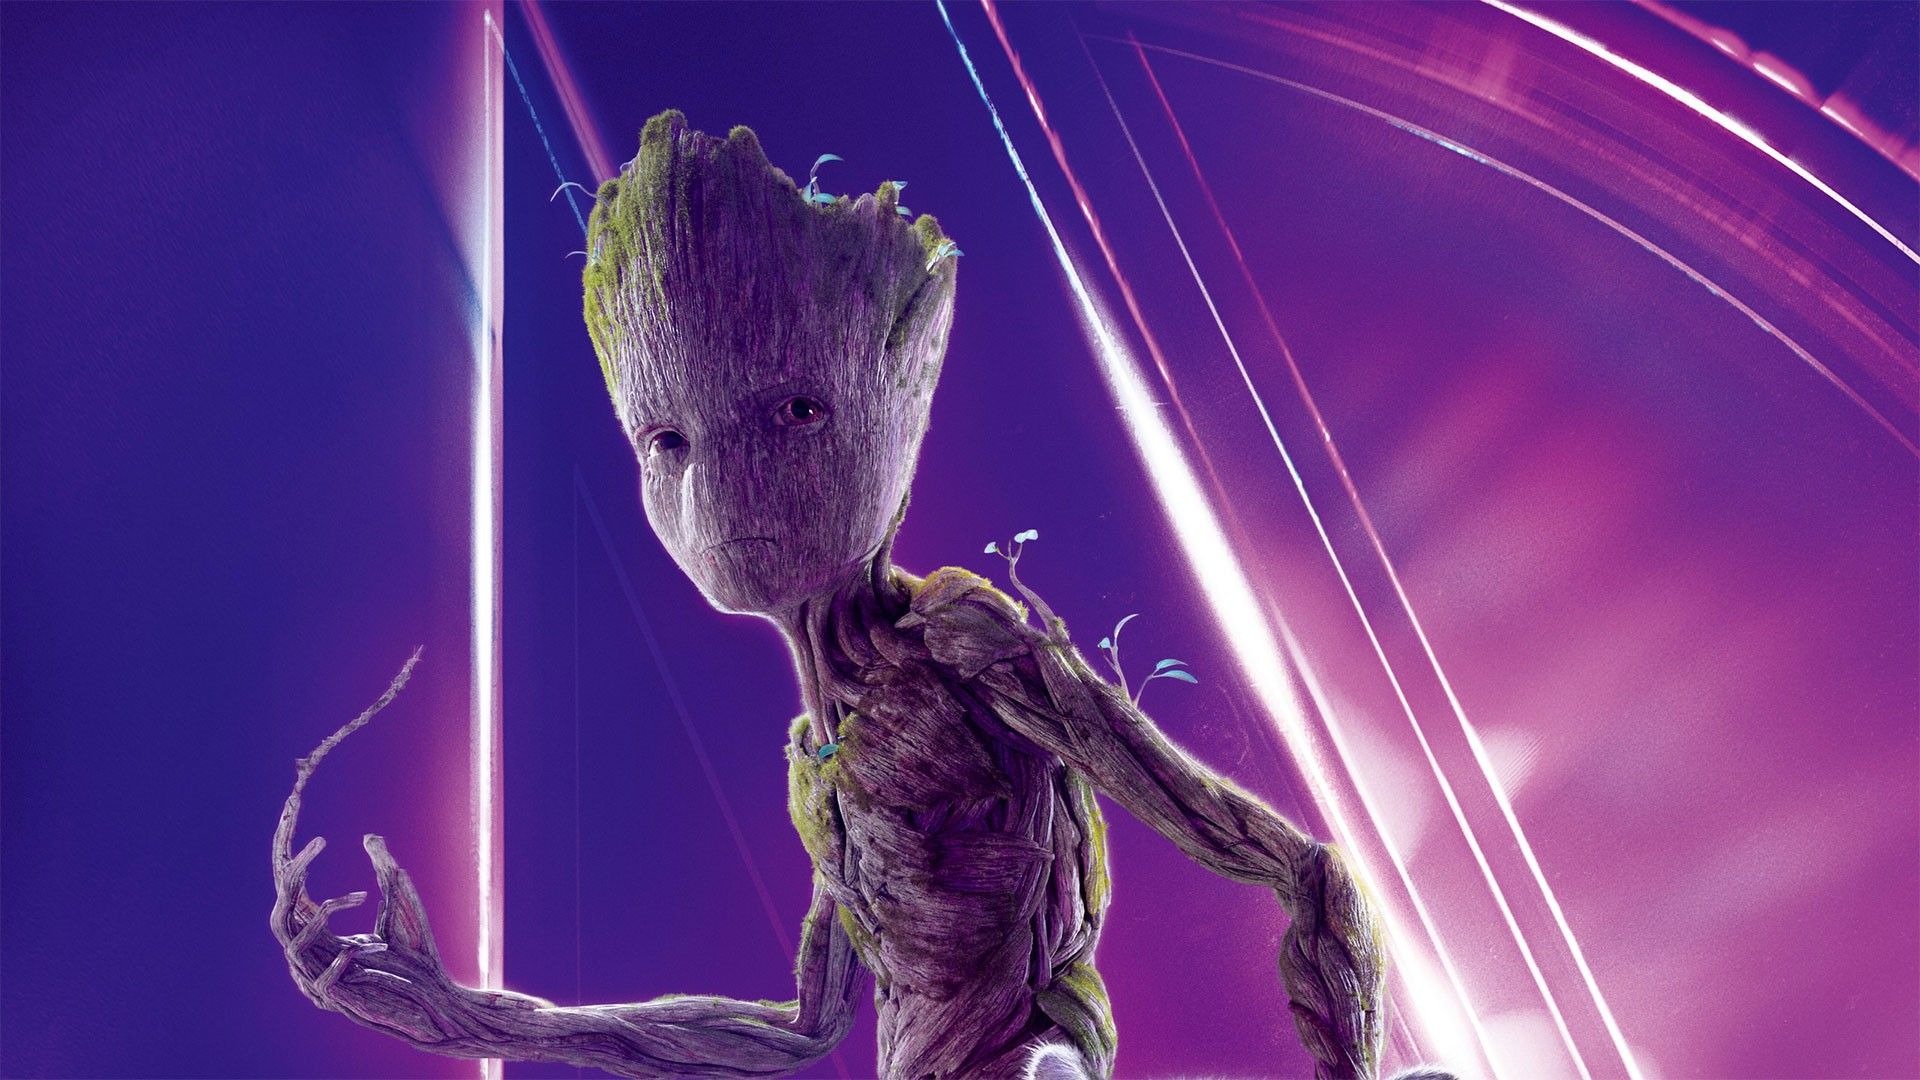 Groot Avengers Endgame Wallpaper HD Best Movie Poster